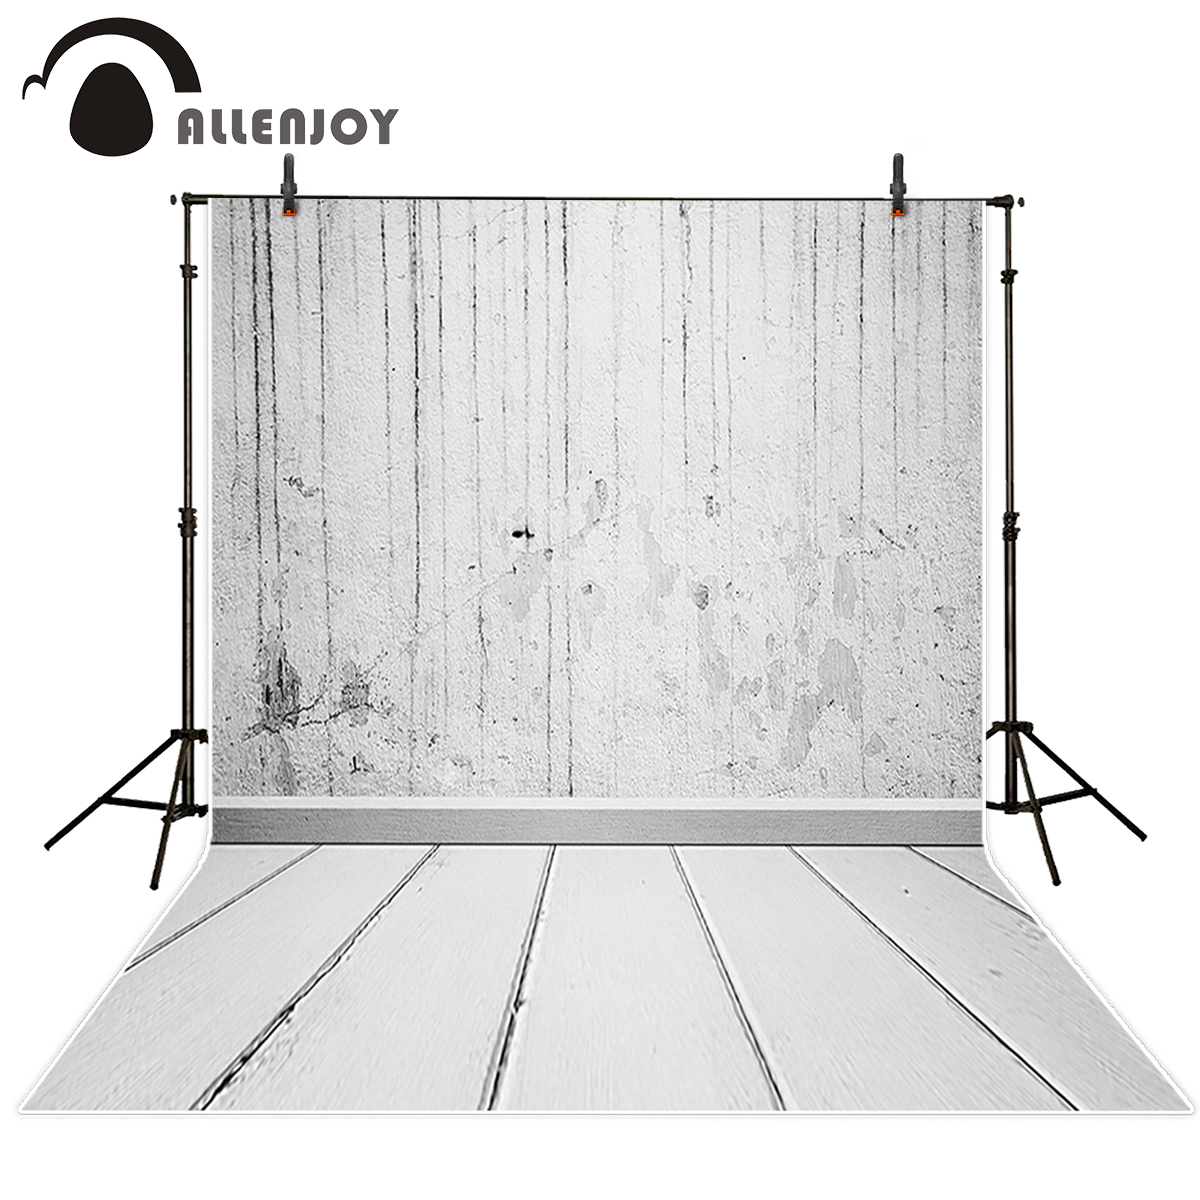 Allenjoy photography theme background old shabby brick wall floor drop photo studio props photography backdrops photographer retro background brick wall photo studio props vinyl vintage photography backdrops wooden floor 7x5ft jieqx050